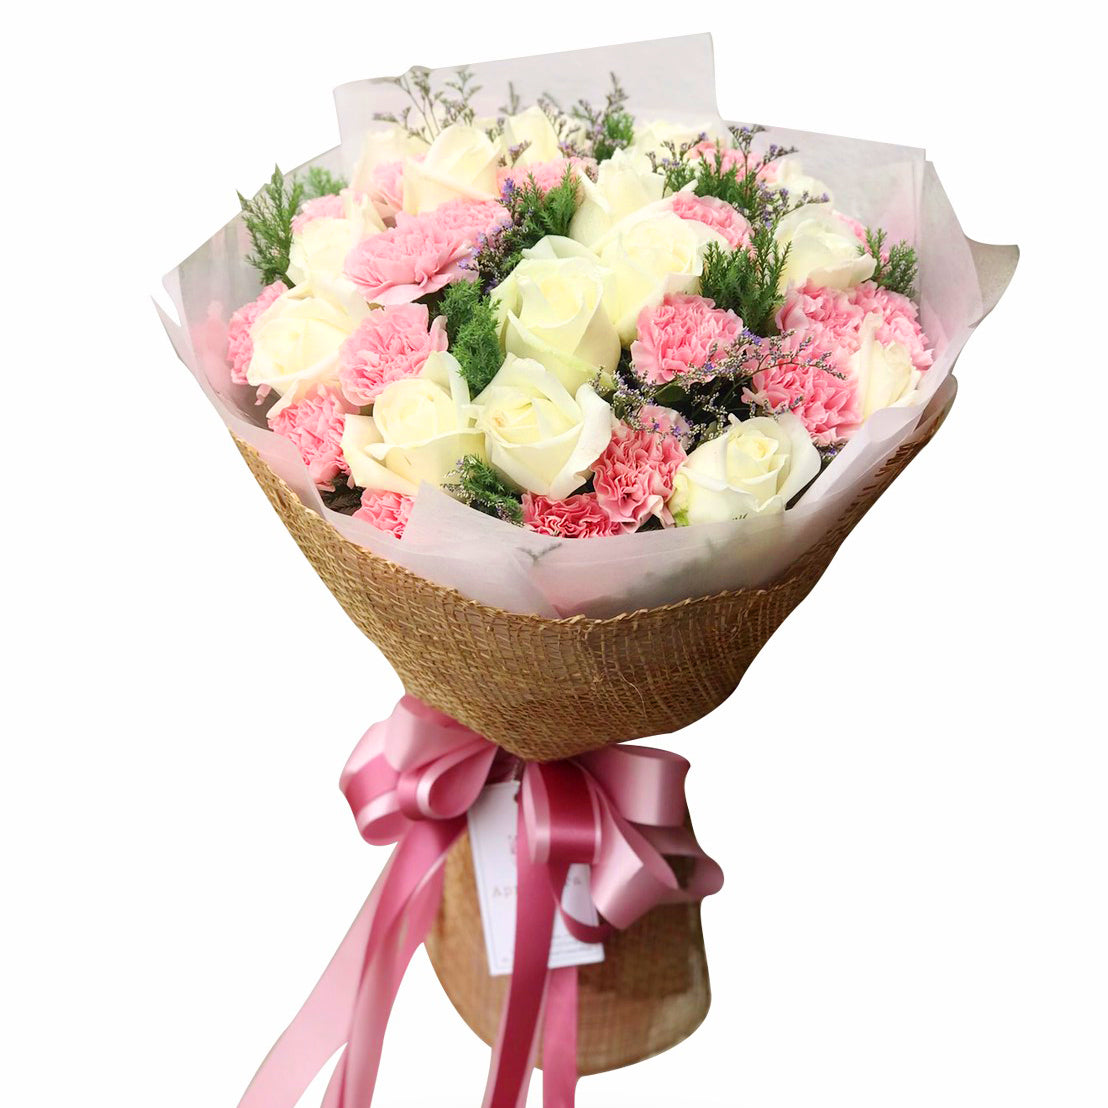 Girly Bouquet Of Roses, Carnation And Caspia - April Flora